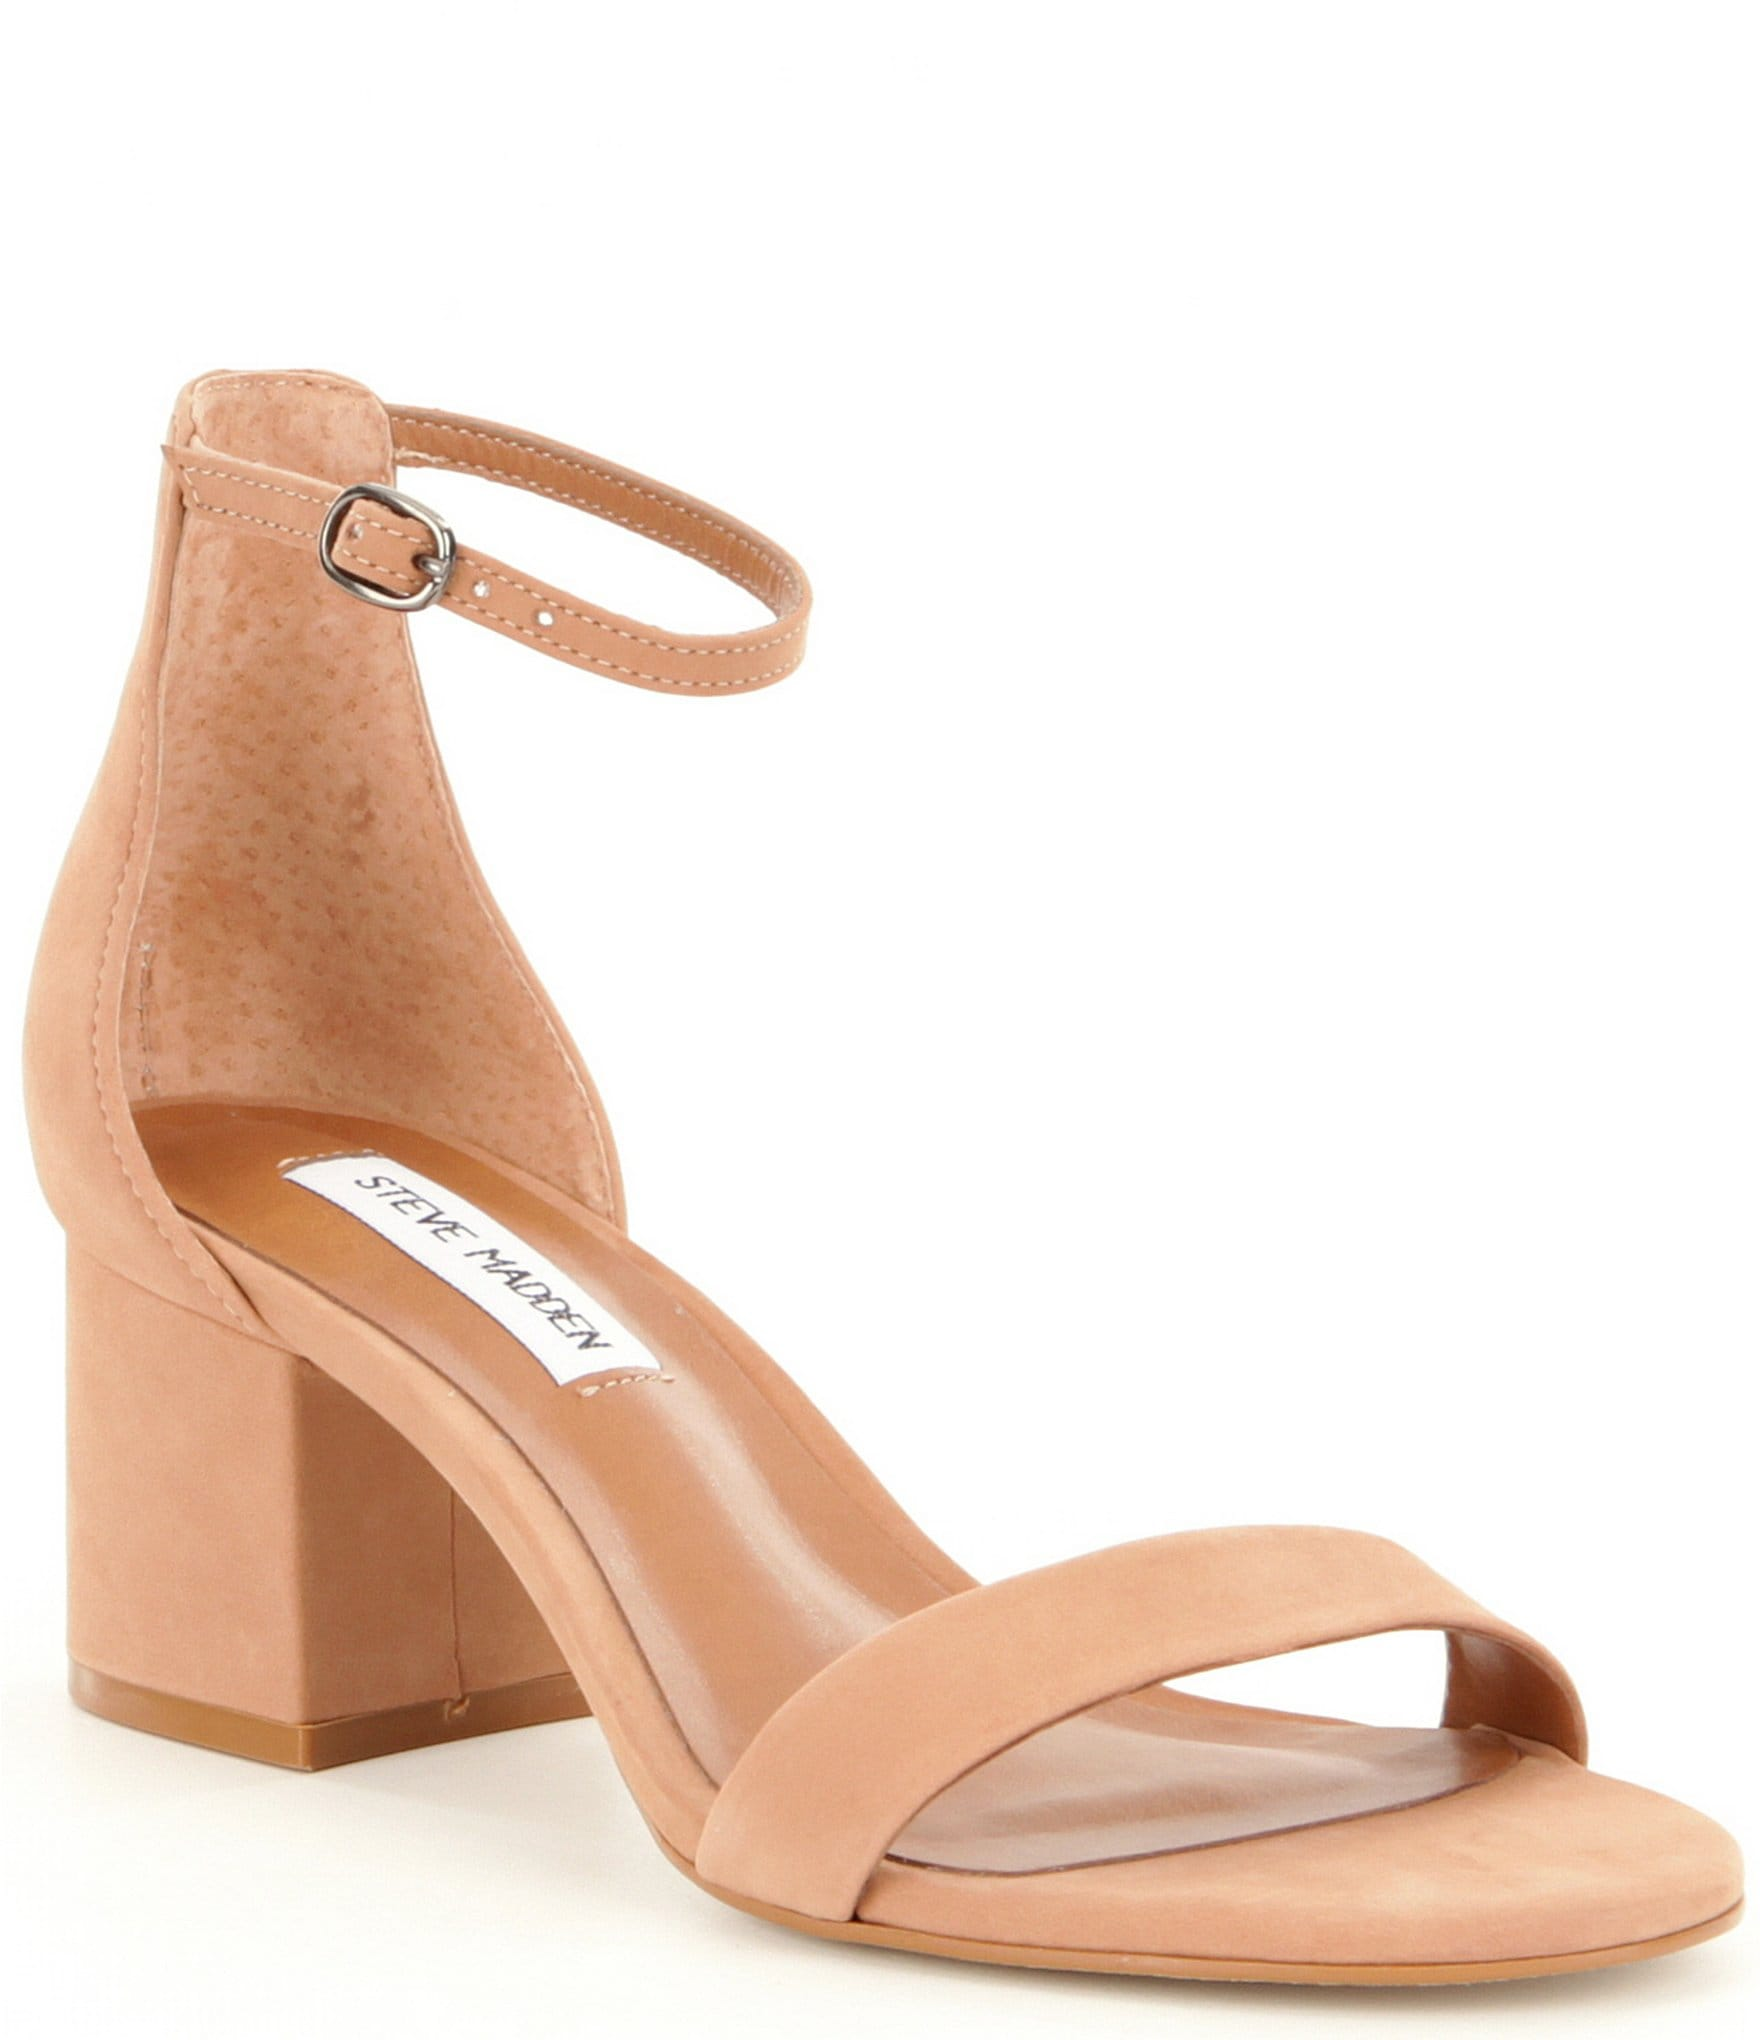 4229eb20b7 Steve Madden Women's Dress Sandals | Dillard's